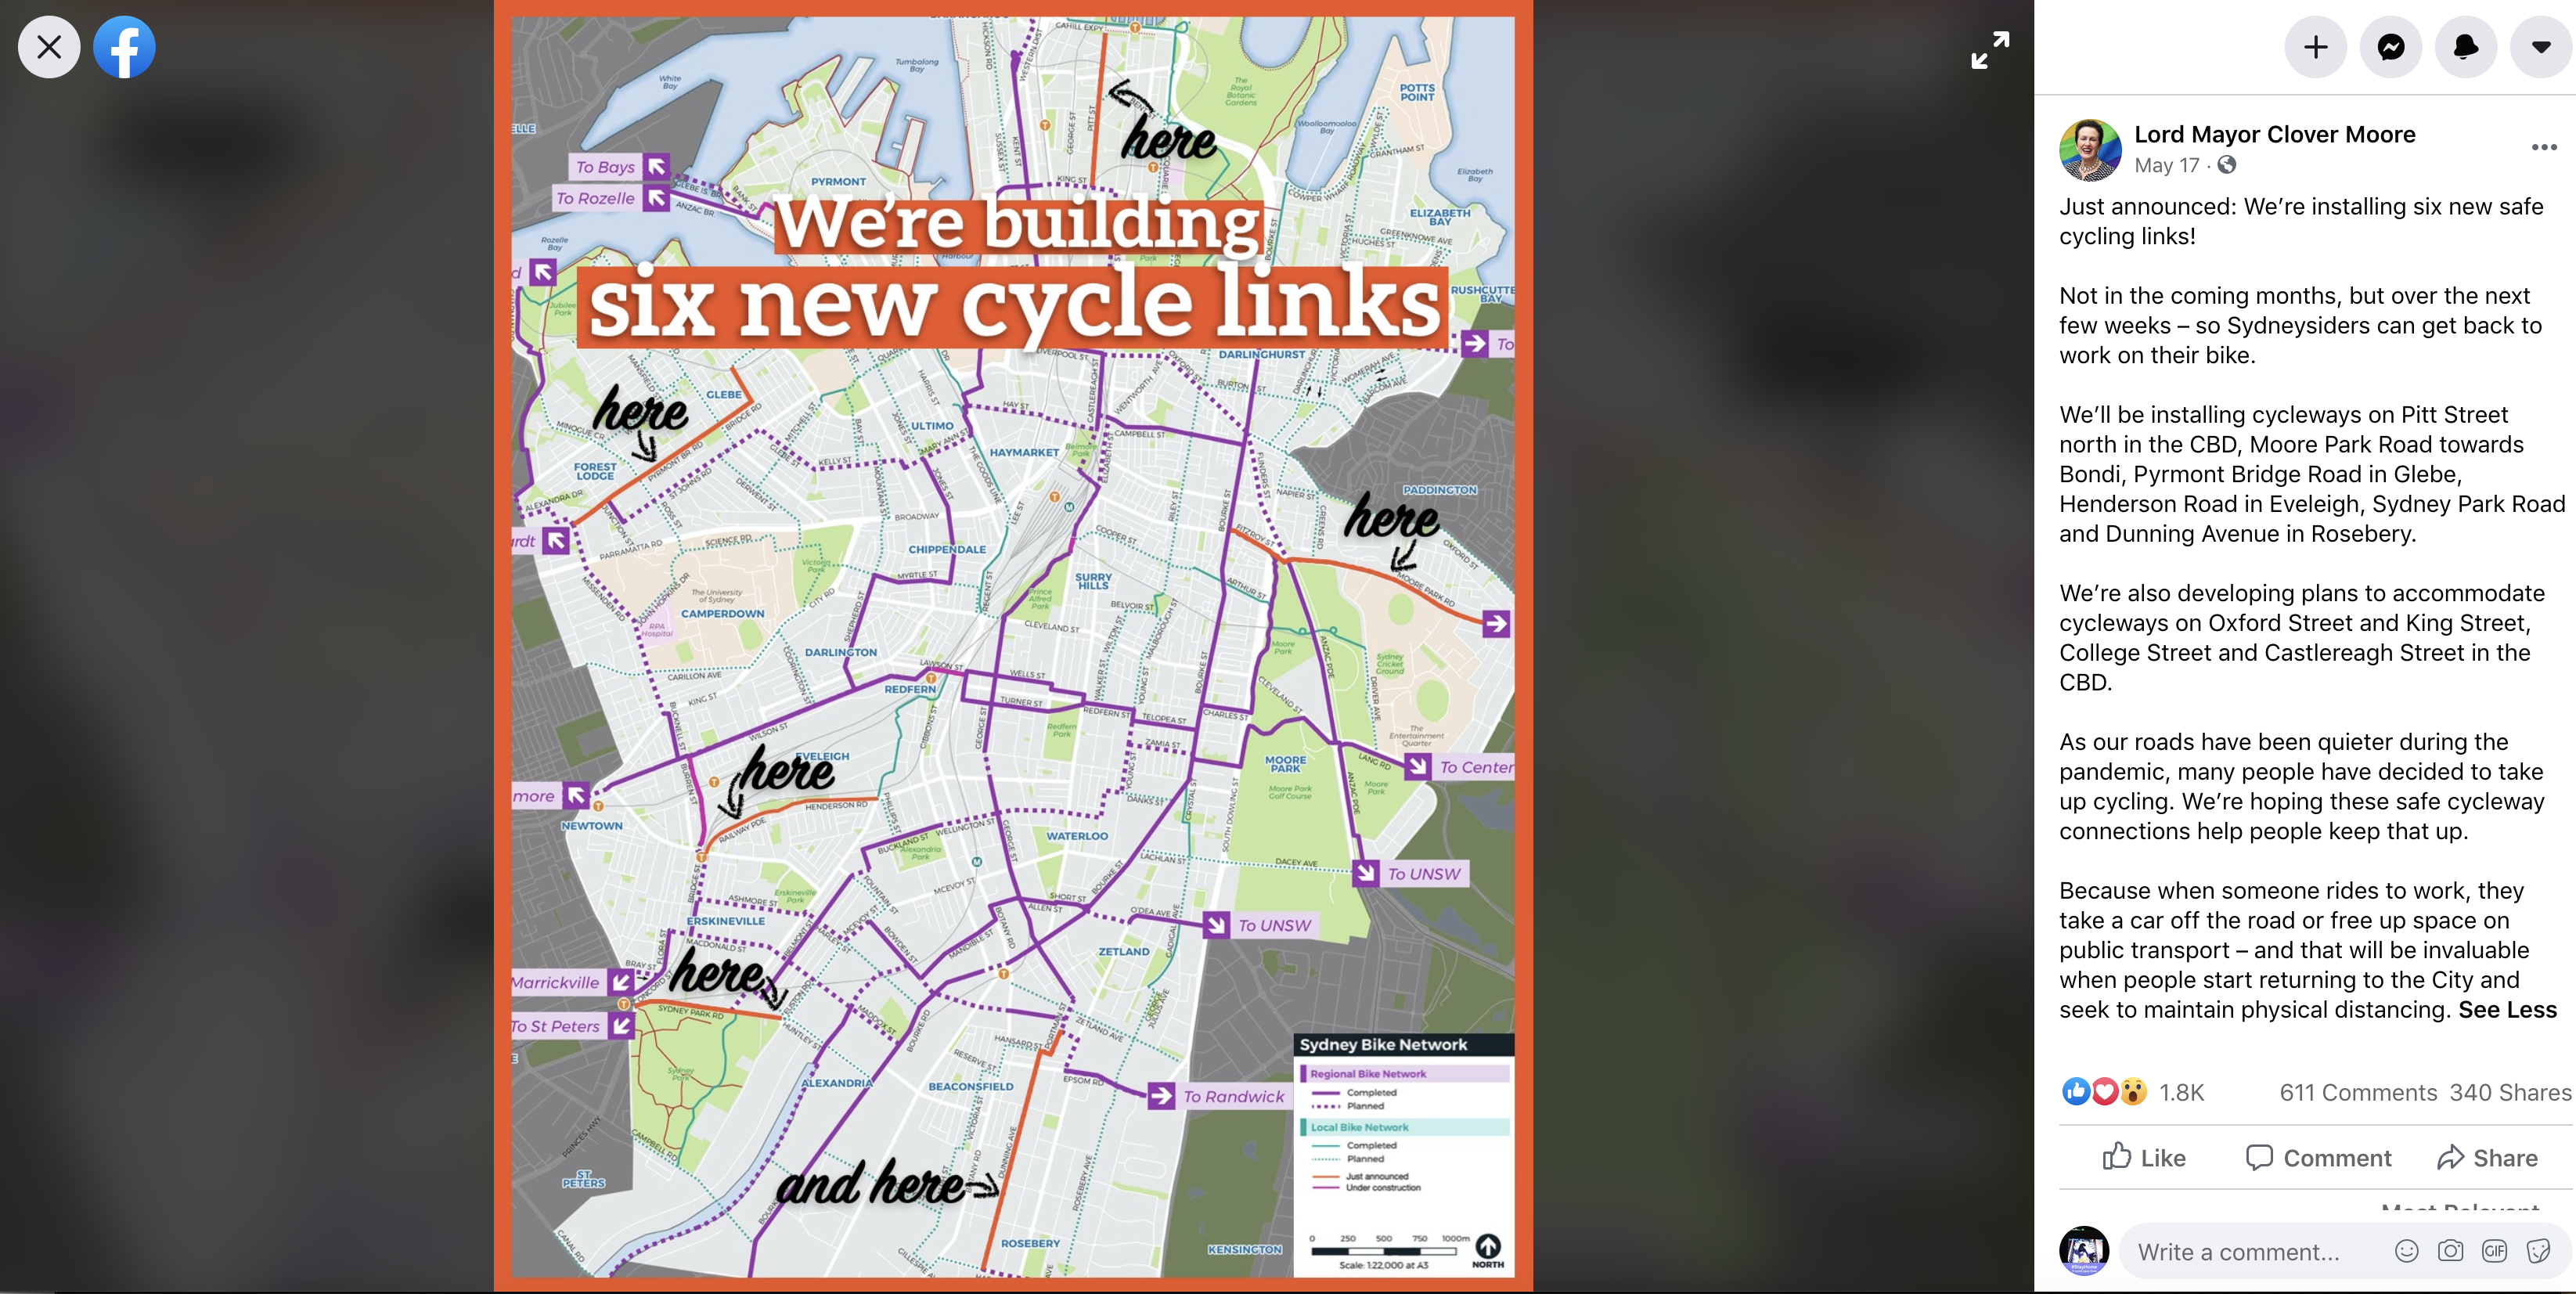 A Facebook post on May 17 shows six new cycleways Sydney is building immediately during the COVID-19 crisis in response to the increase in cyclists.